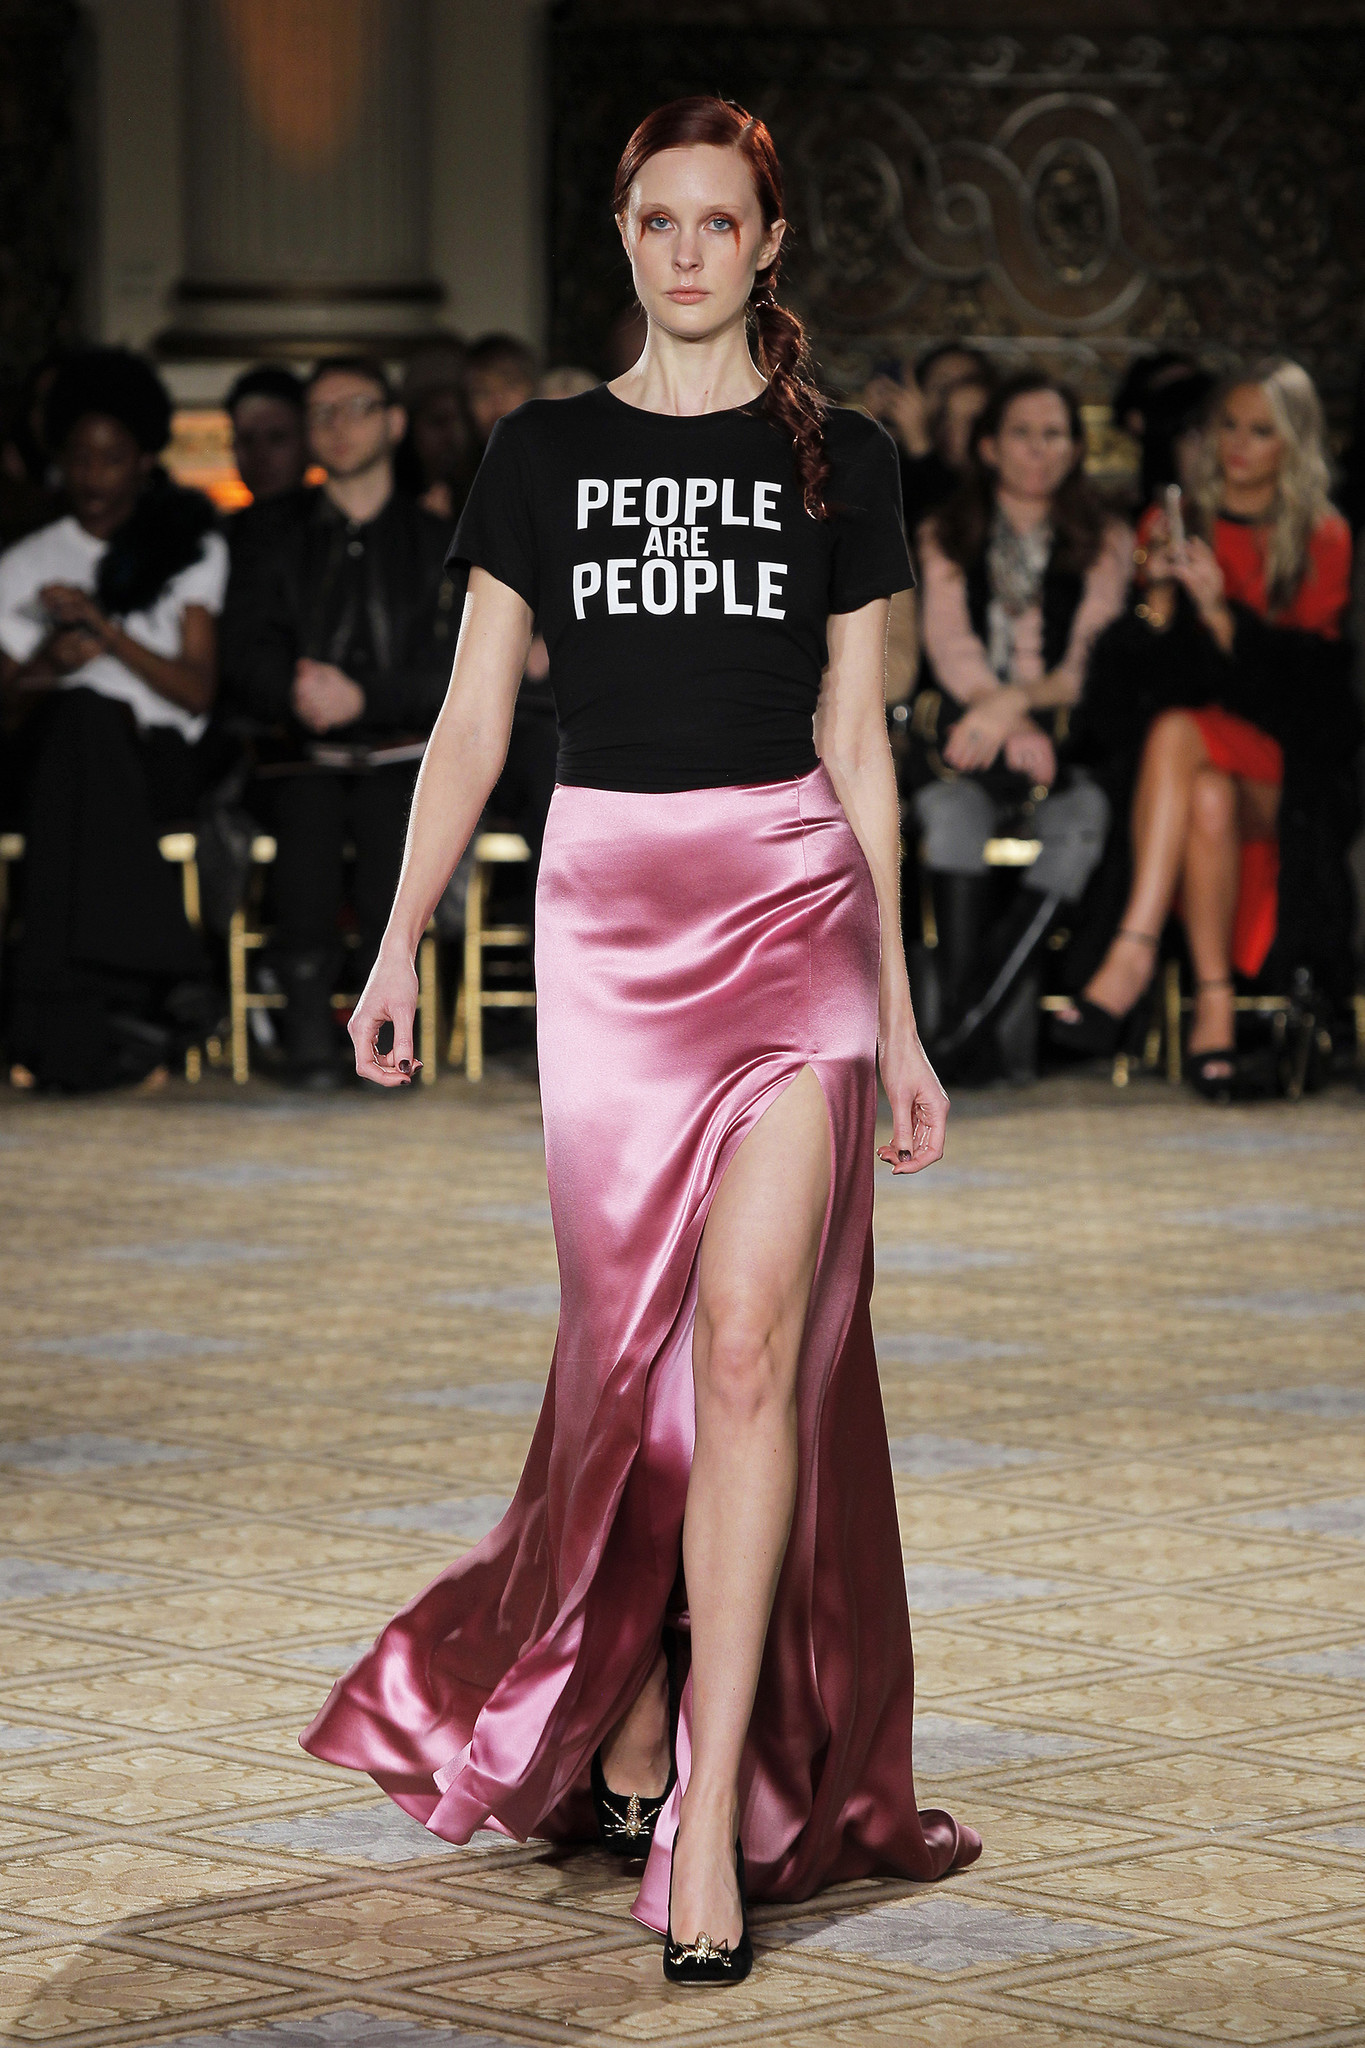 Designers get political in New York Fashion Week shows ...